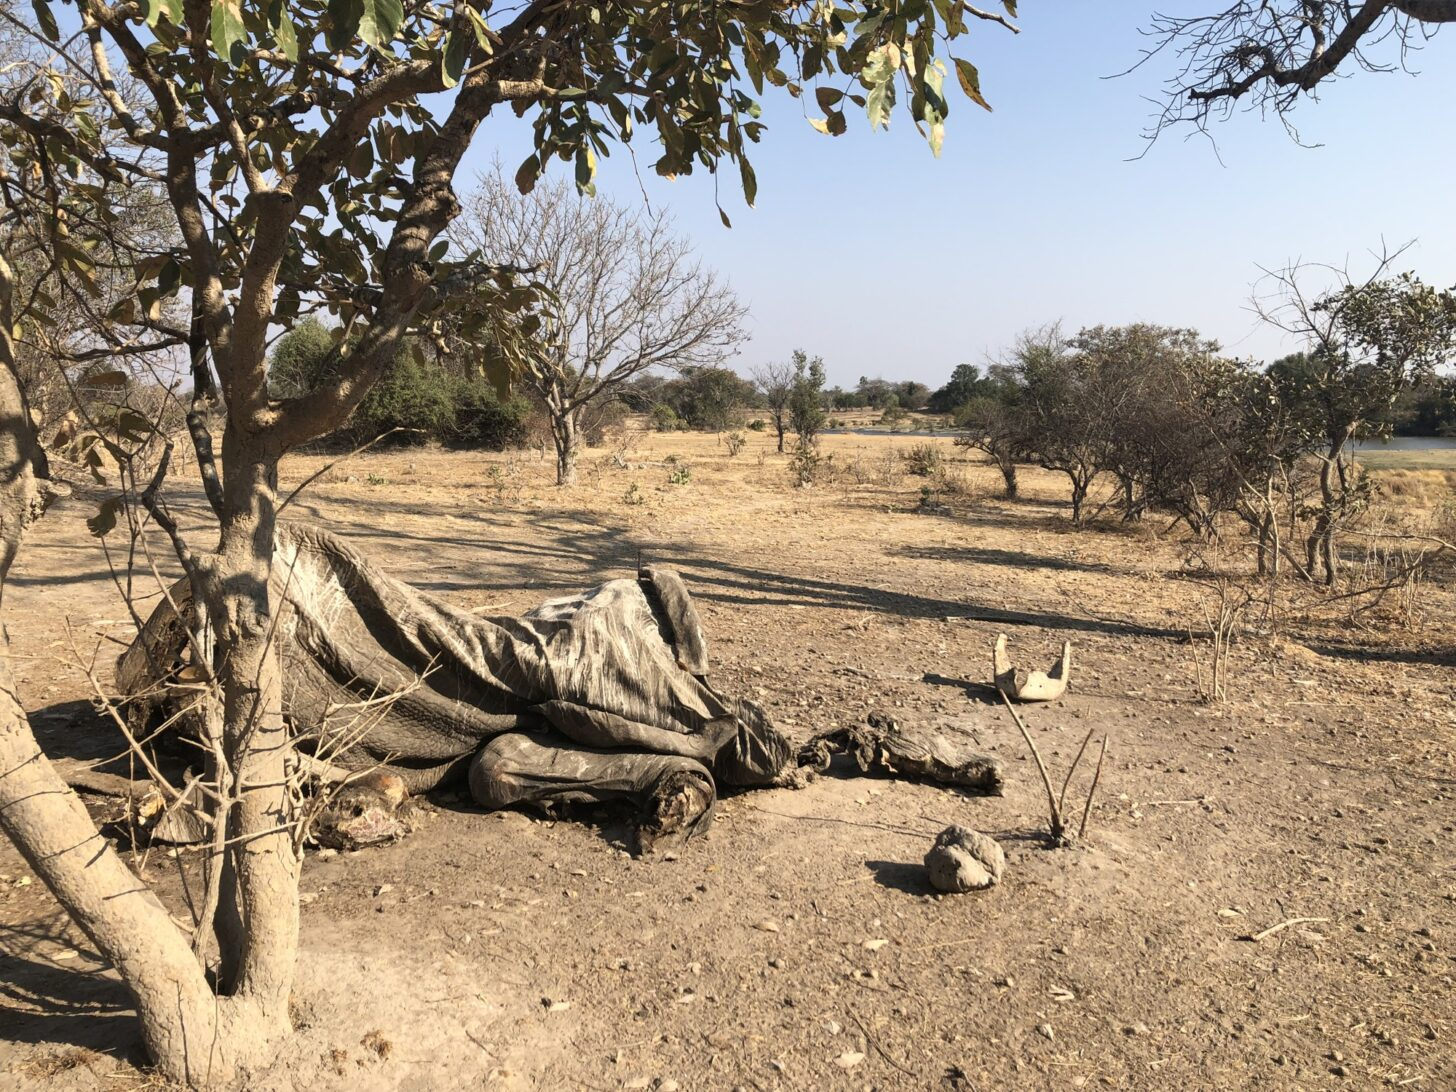 a withered elephant carcass rots away, almost shapeless